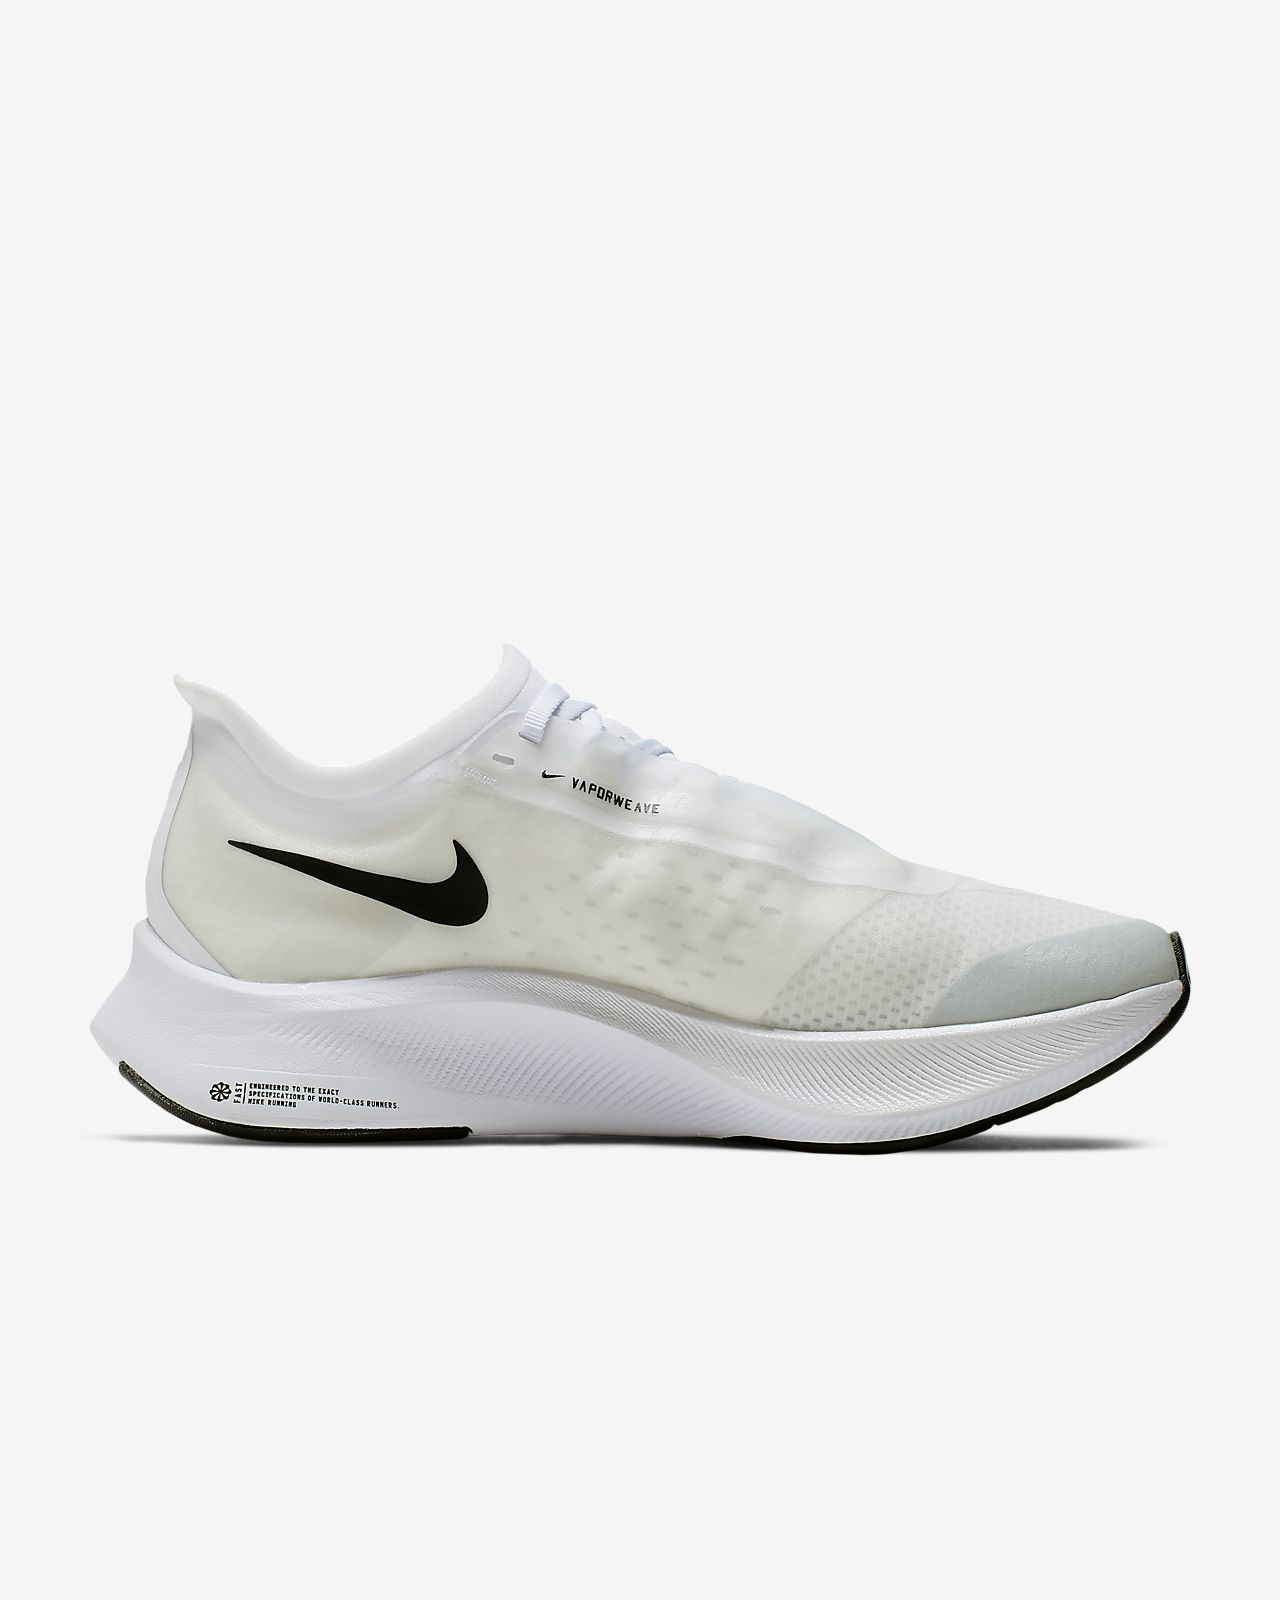 Chaussure de running Nike Zoom Fly 3 pour Femme